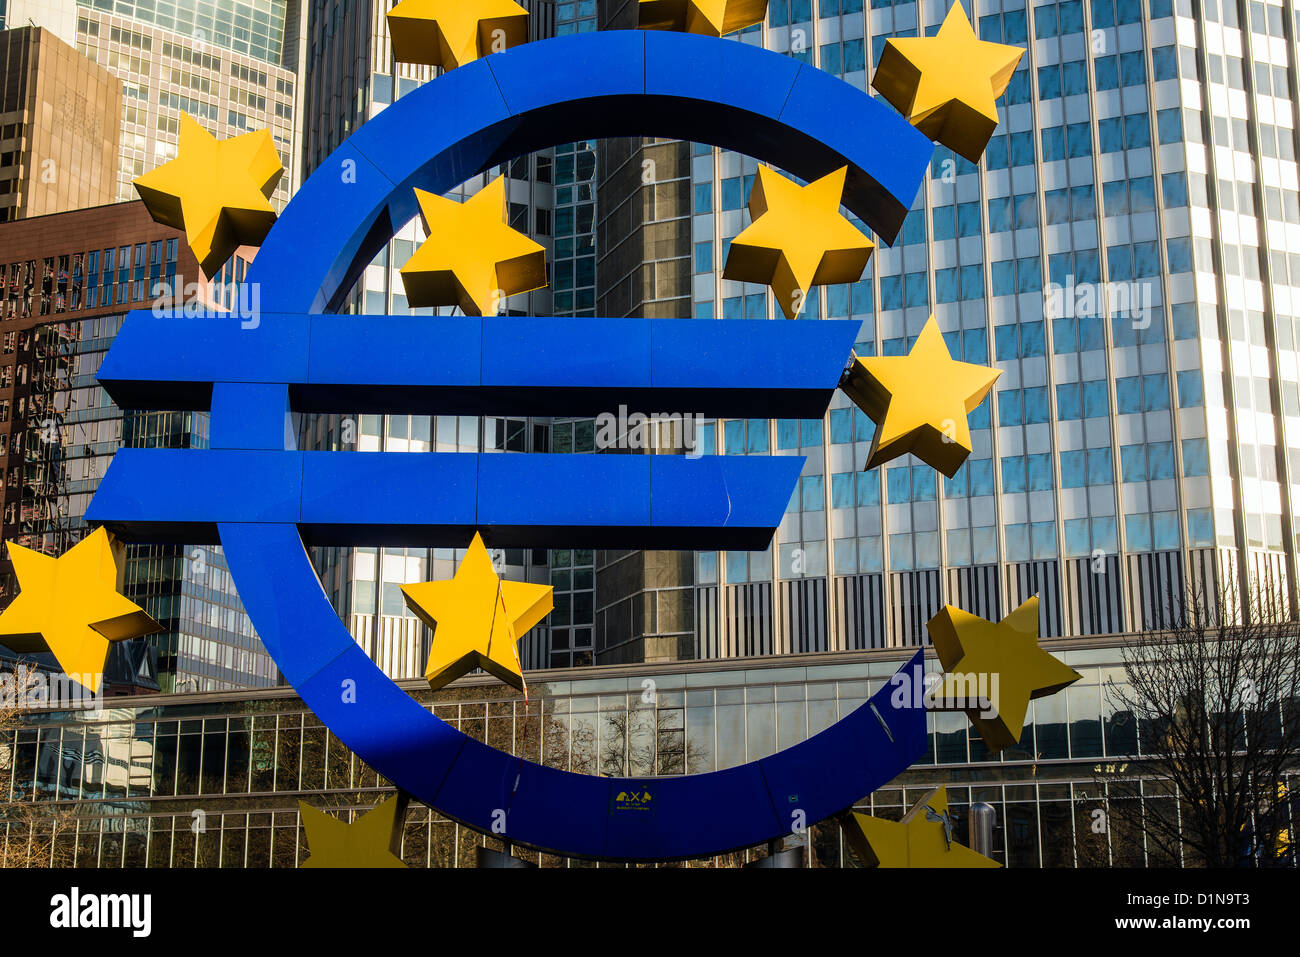 Euro monument located at the entrance of the European Central Bank headquarters, Frankfurt am Main, Hesse, Germany - Stock Image